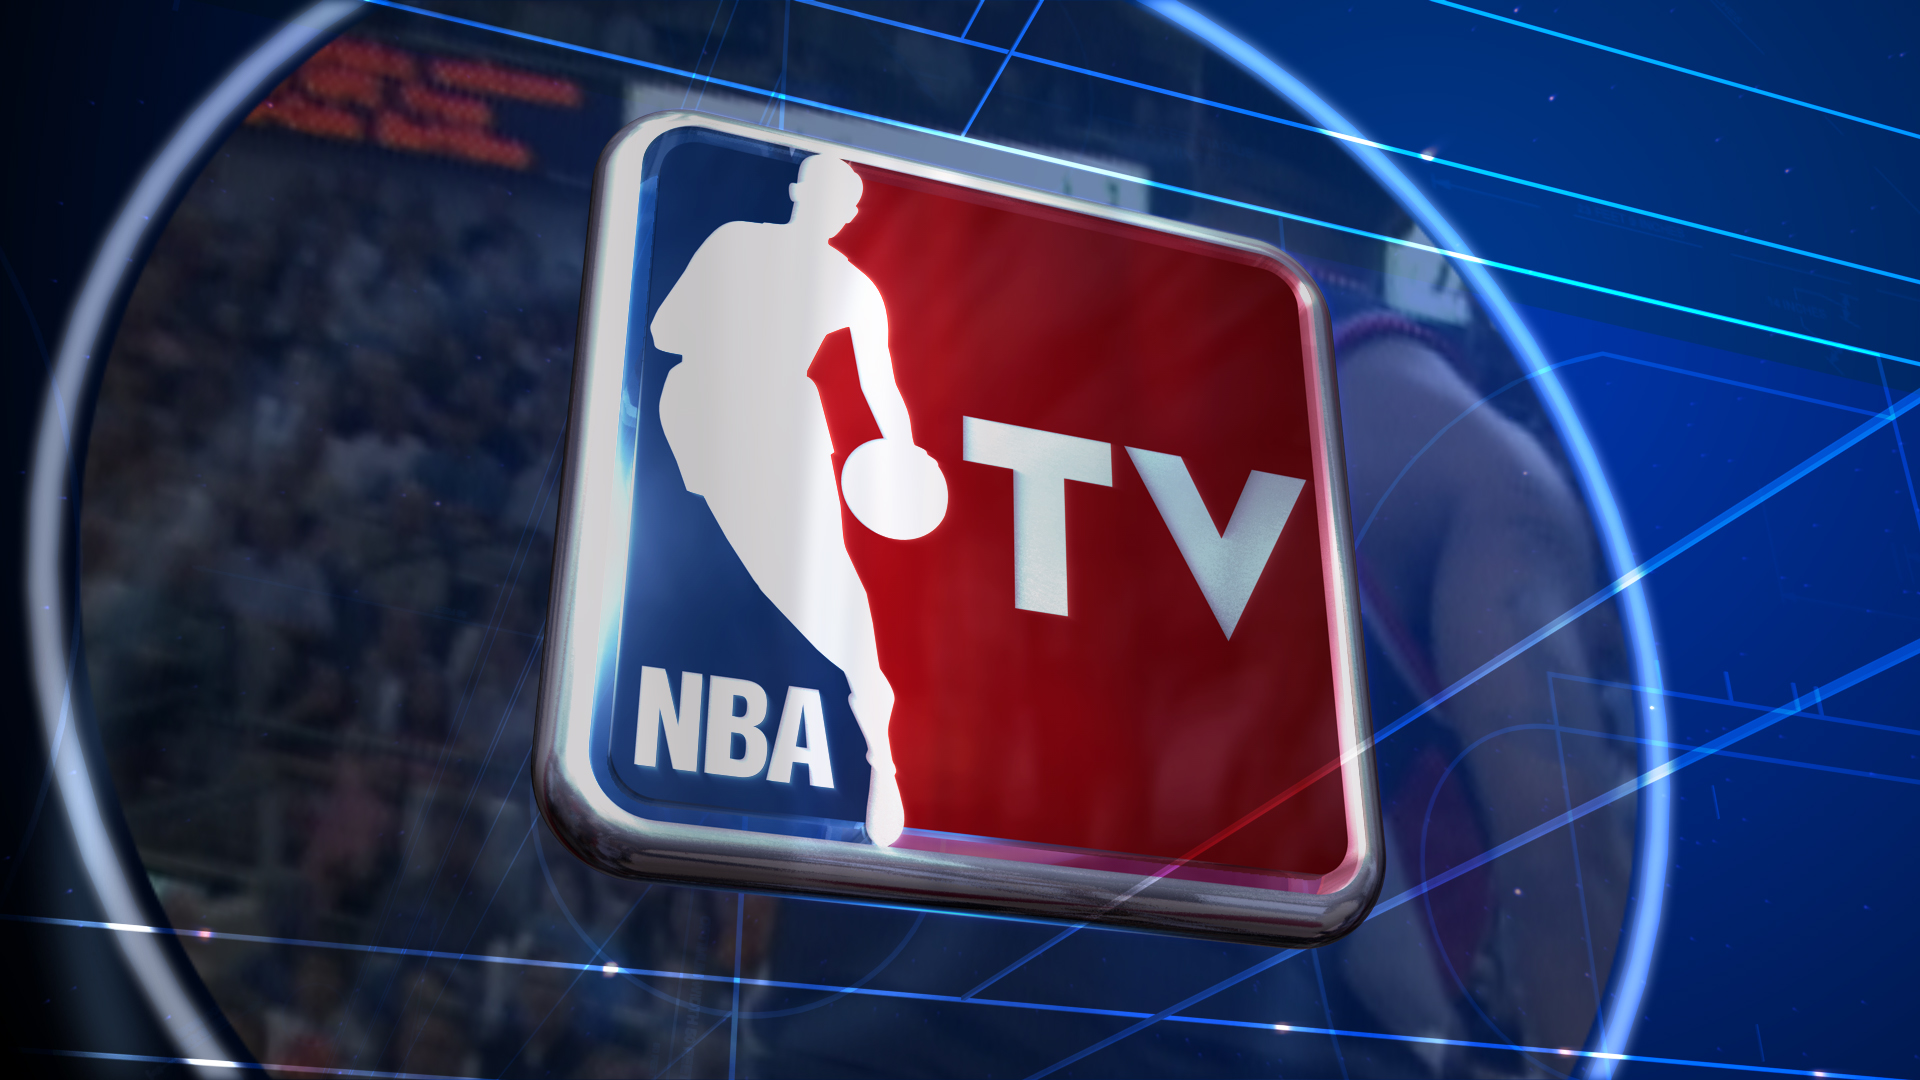 Nba Tv Registers Record Growth In 2012